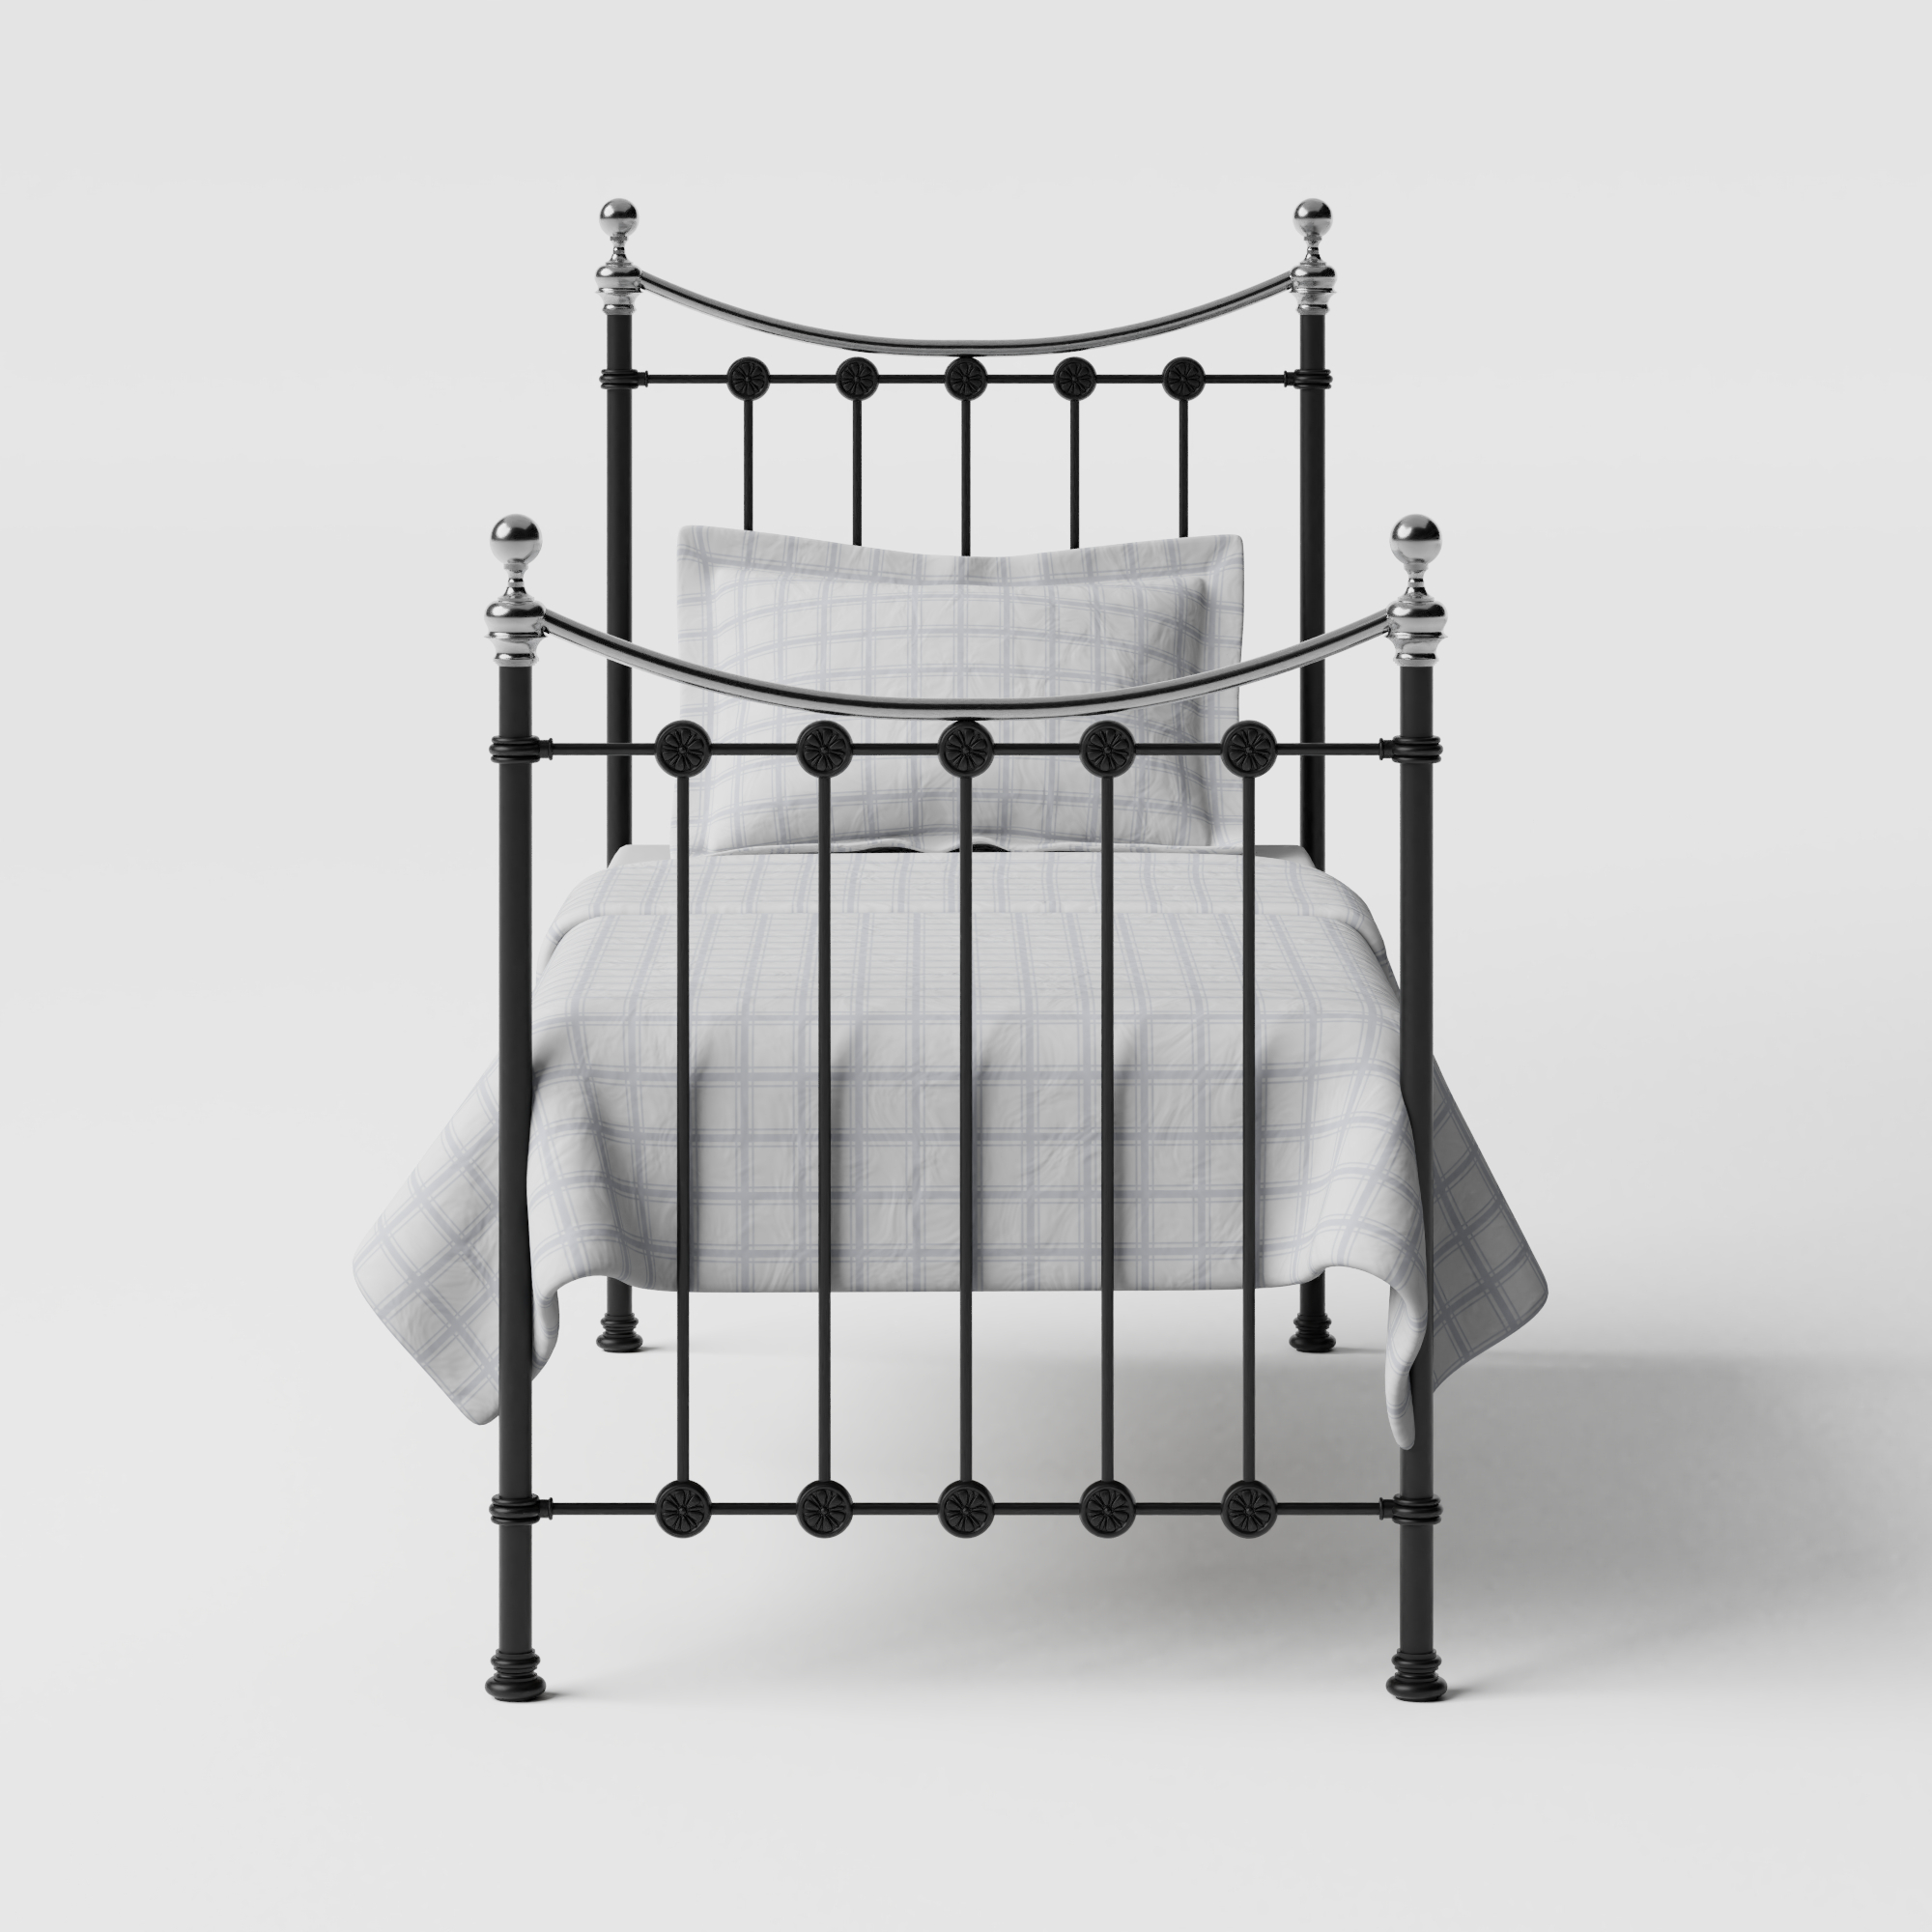 Carrick Chromo iron/metal single bed in black